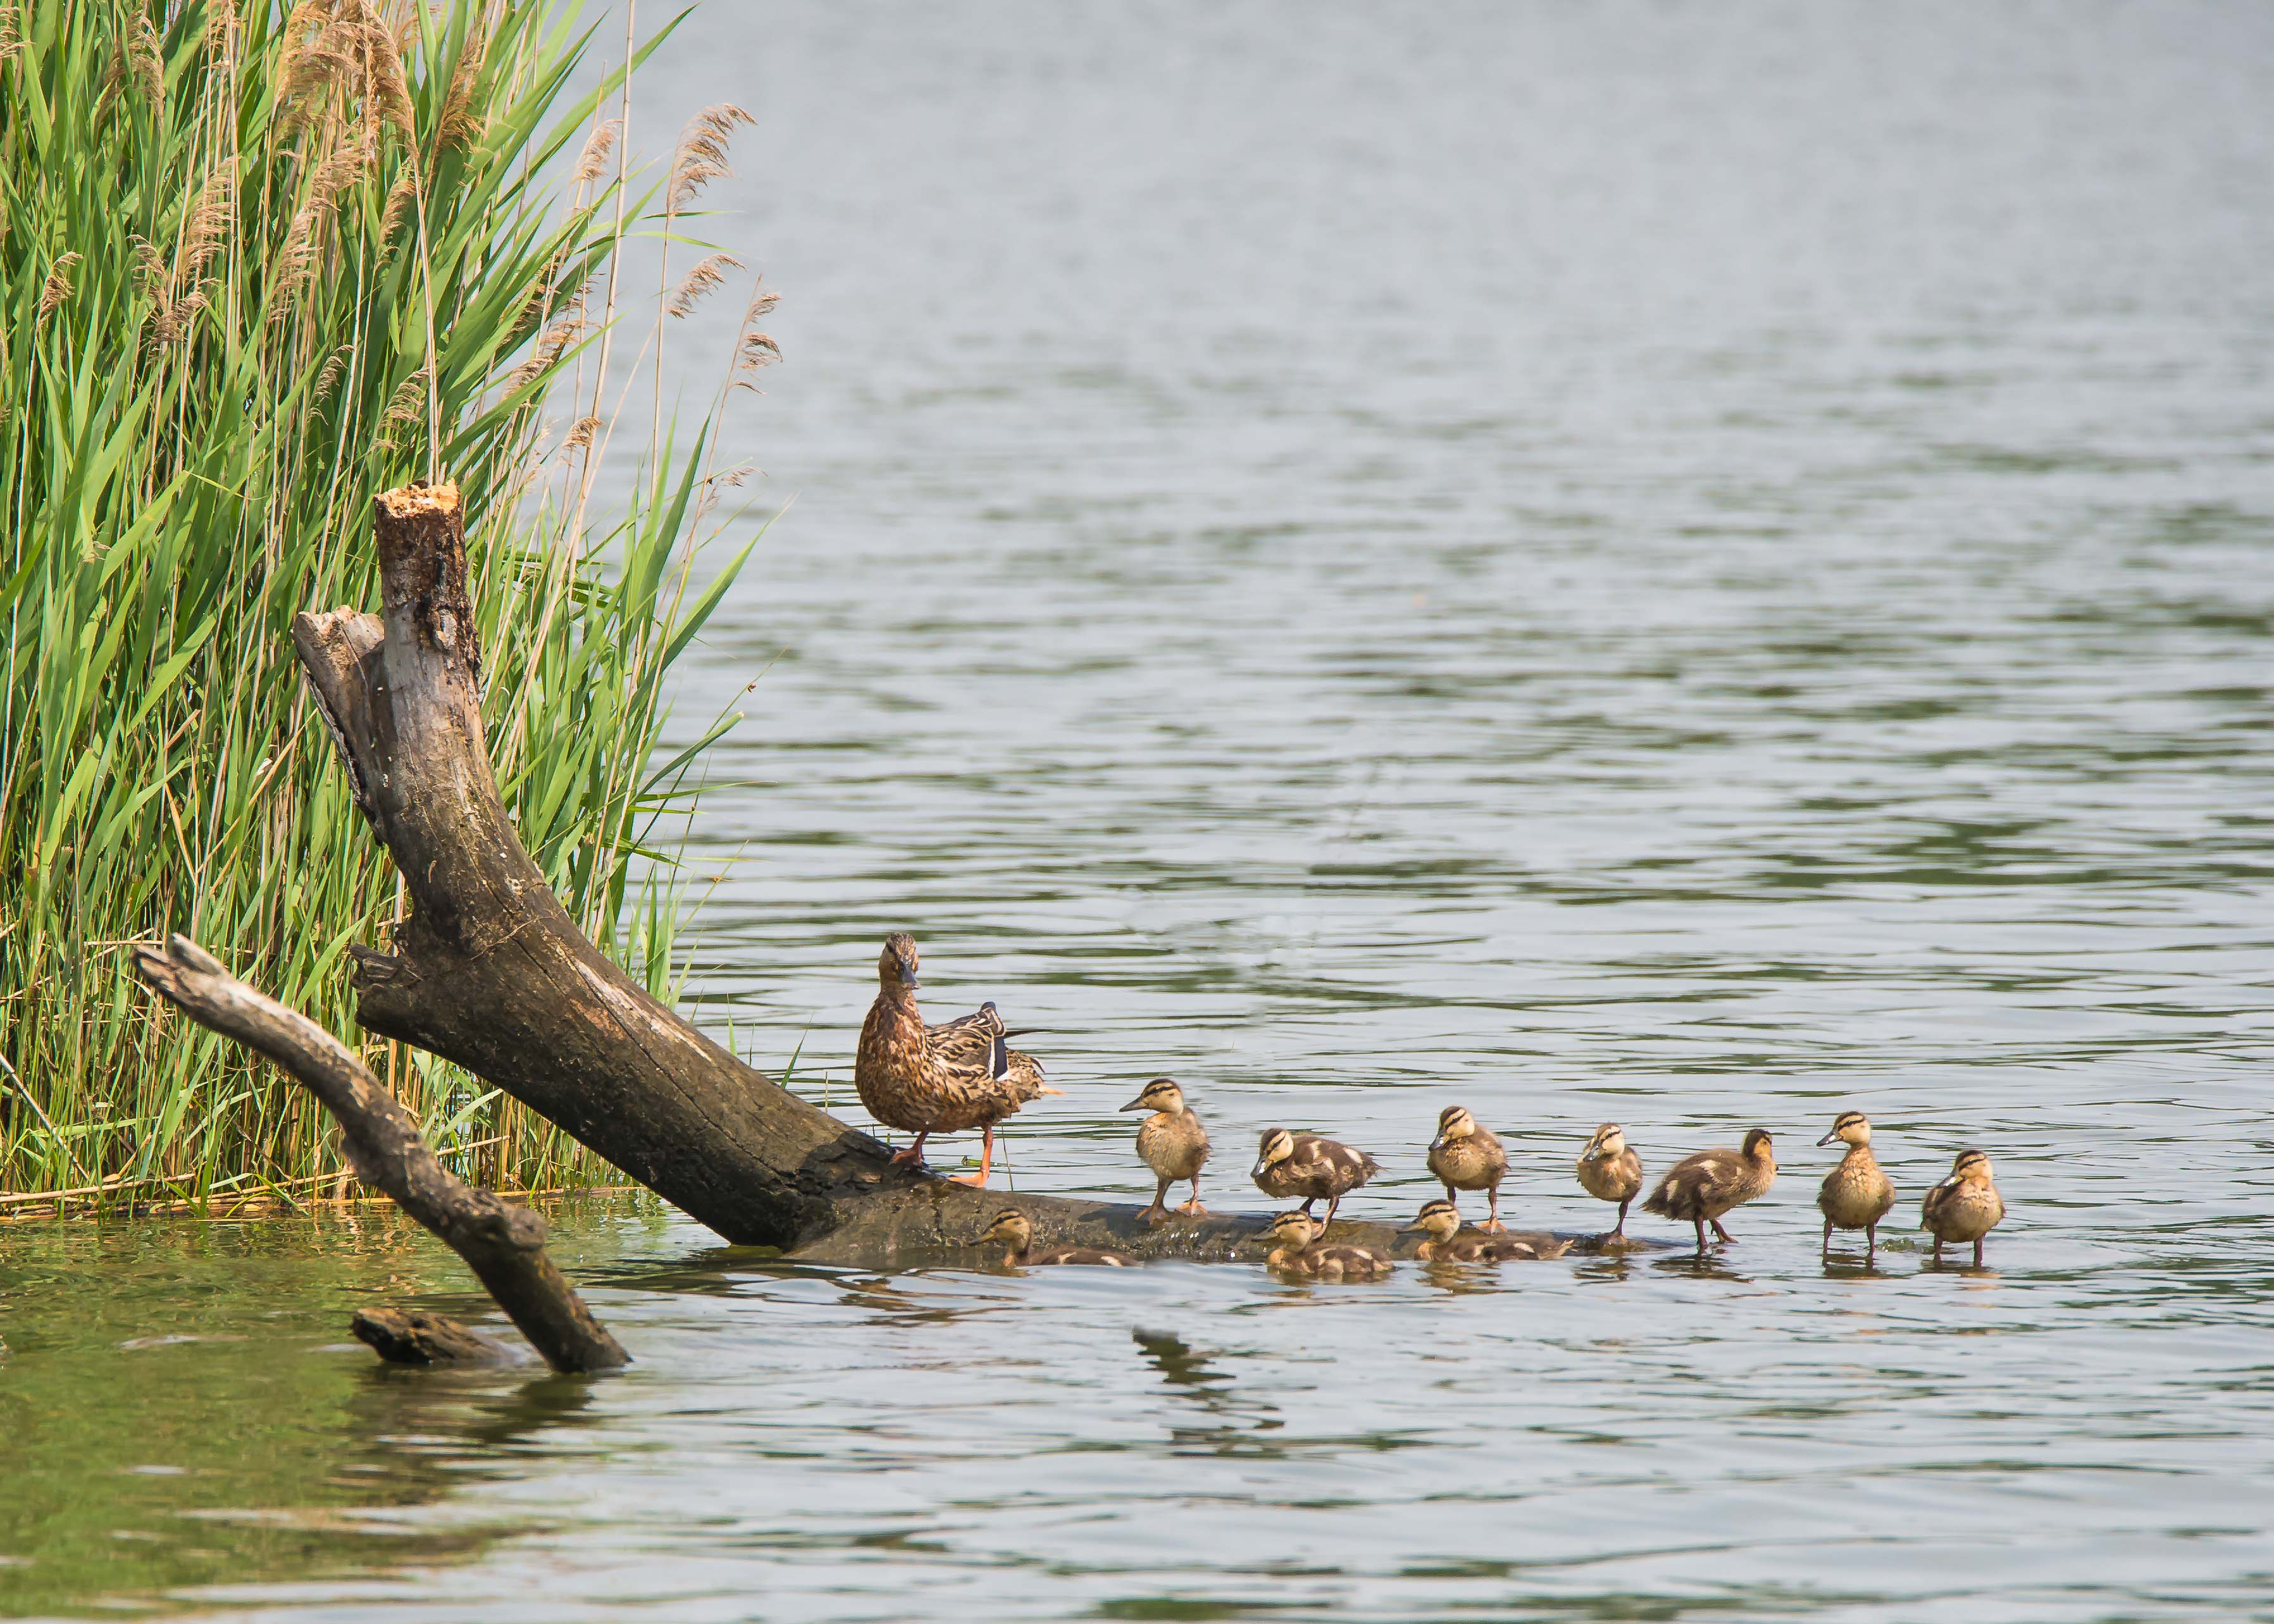 Make Way for Ducklings end of July